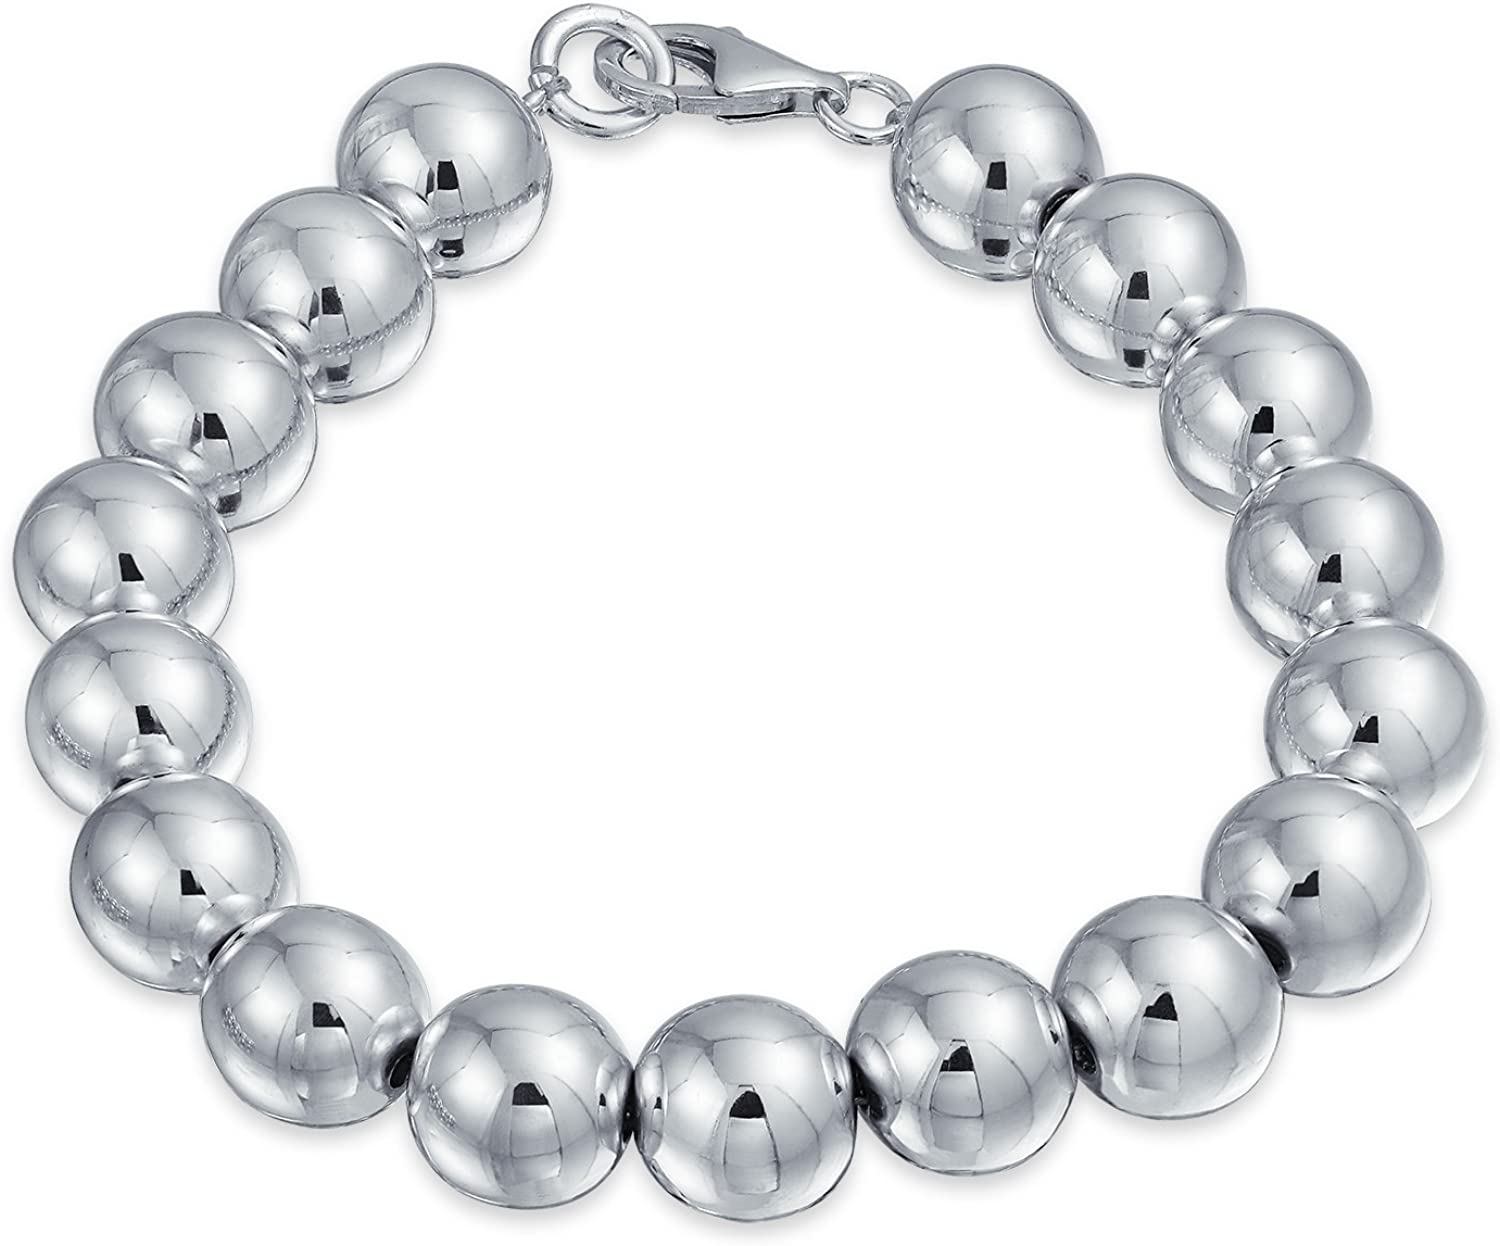 Simple Plain Hand Strung Directly managed store Polish 1 year warranty Round Bead Silver Sterling 925